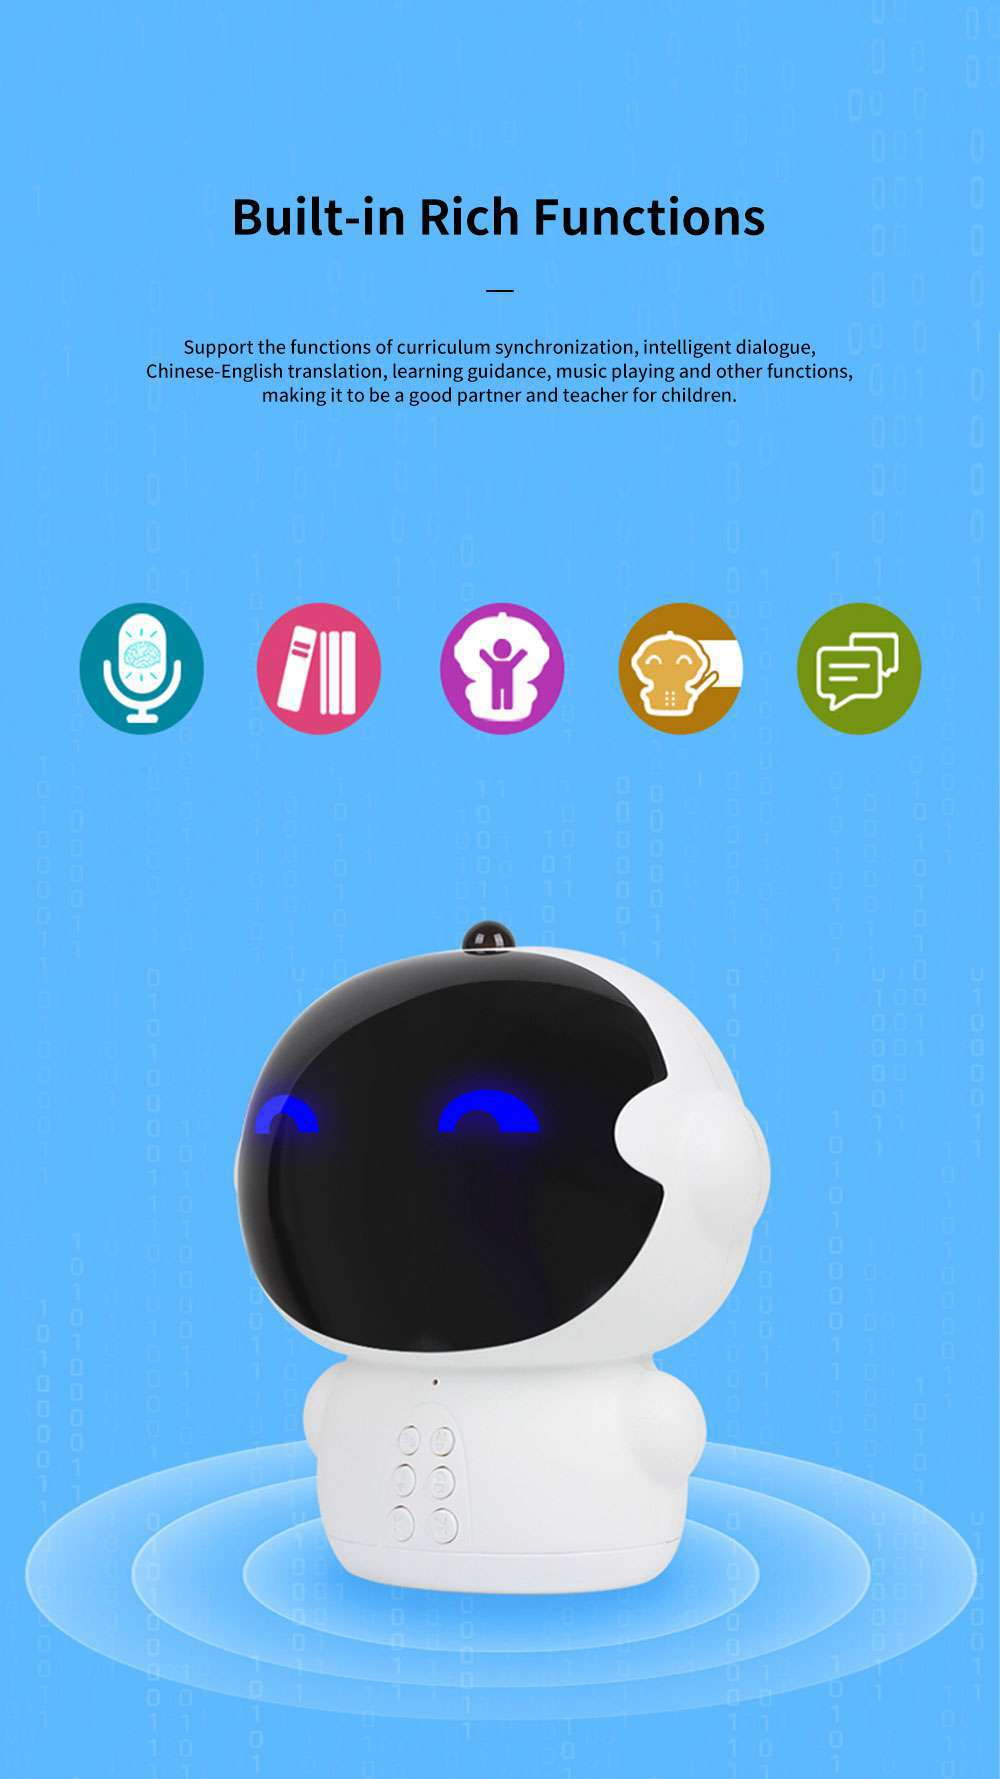 Educational Smart Robot for Children Early Childhood Learning Machine Support Wifi Chatting Music Story Kinds of Knowledge and Rich Functions 4